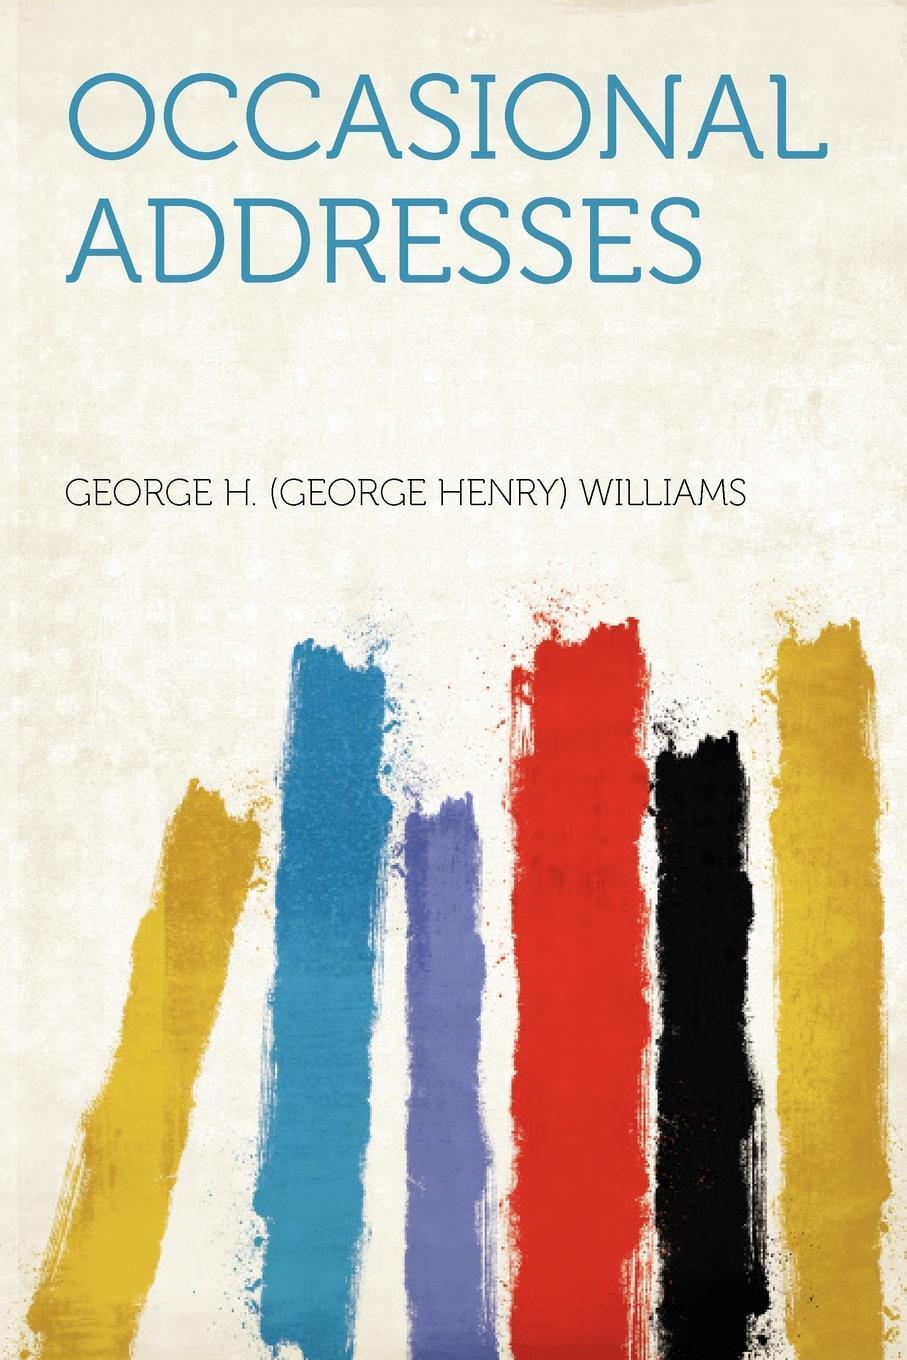 George H. (George Henry) Williams. Occasional Addresses